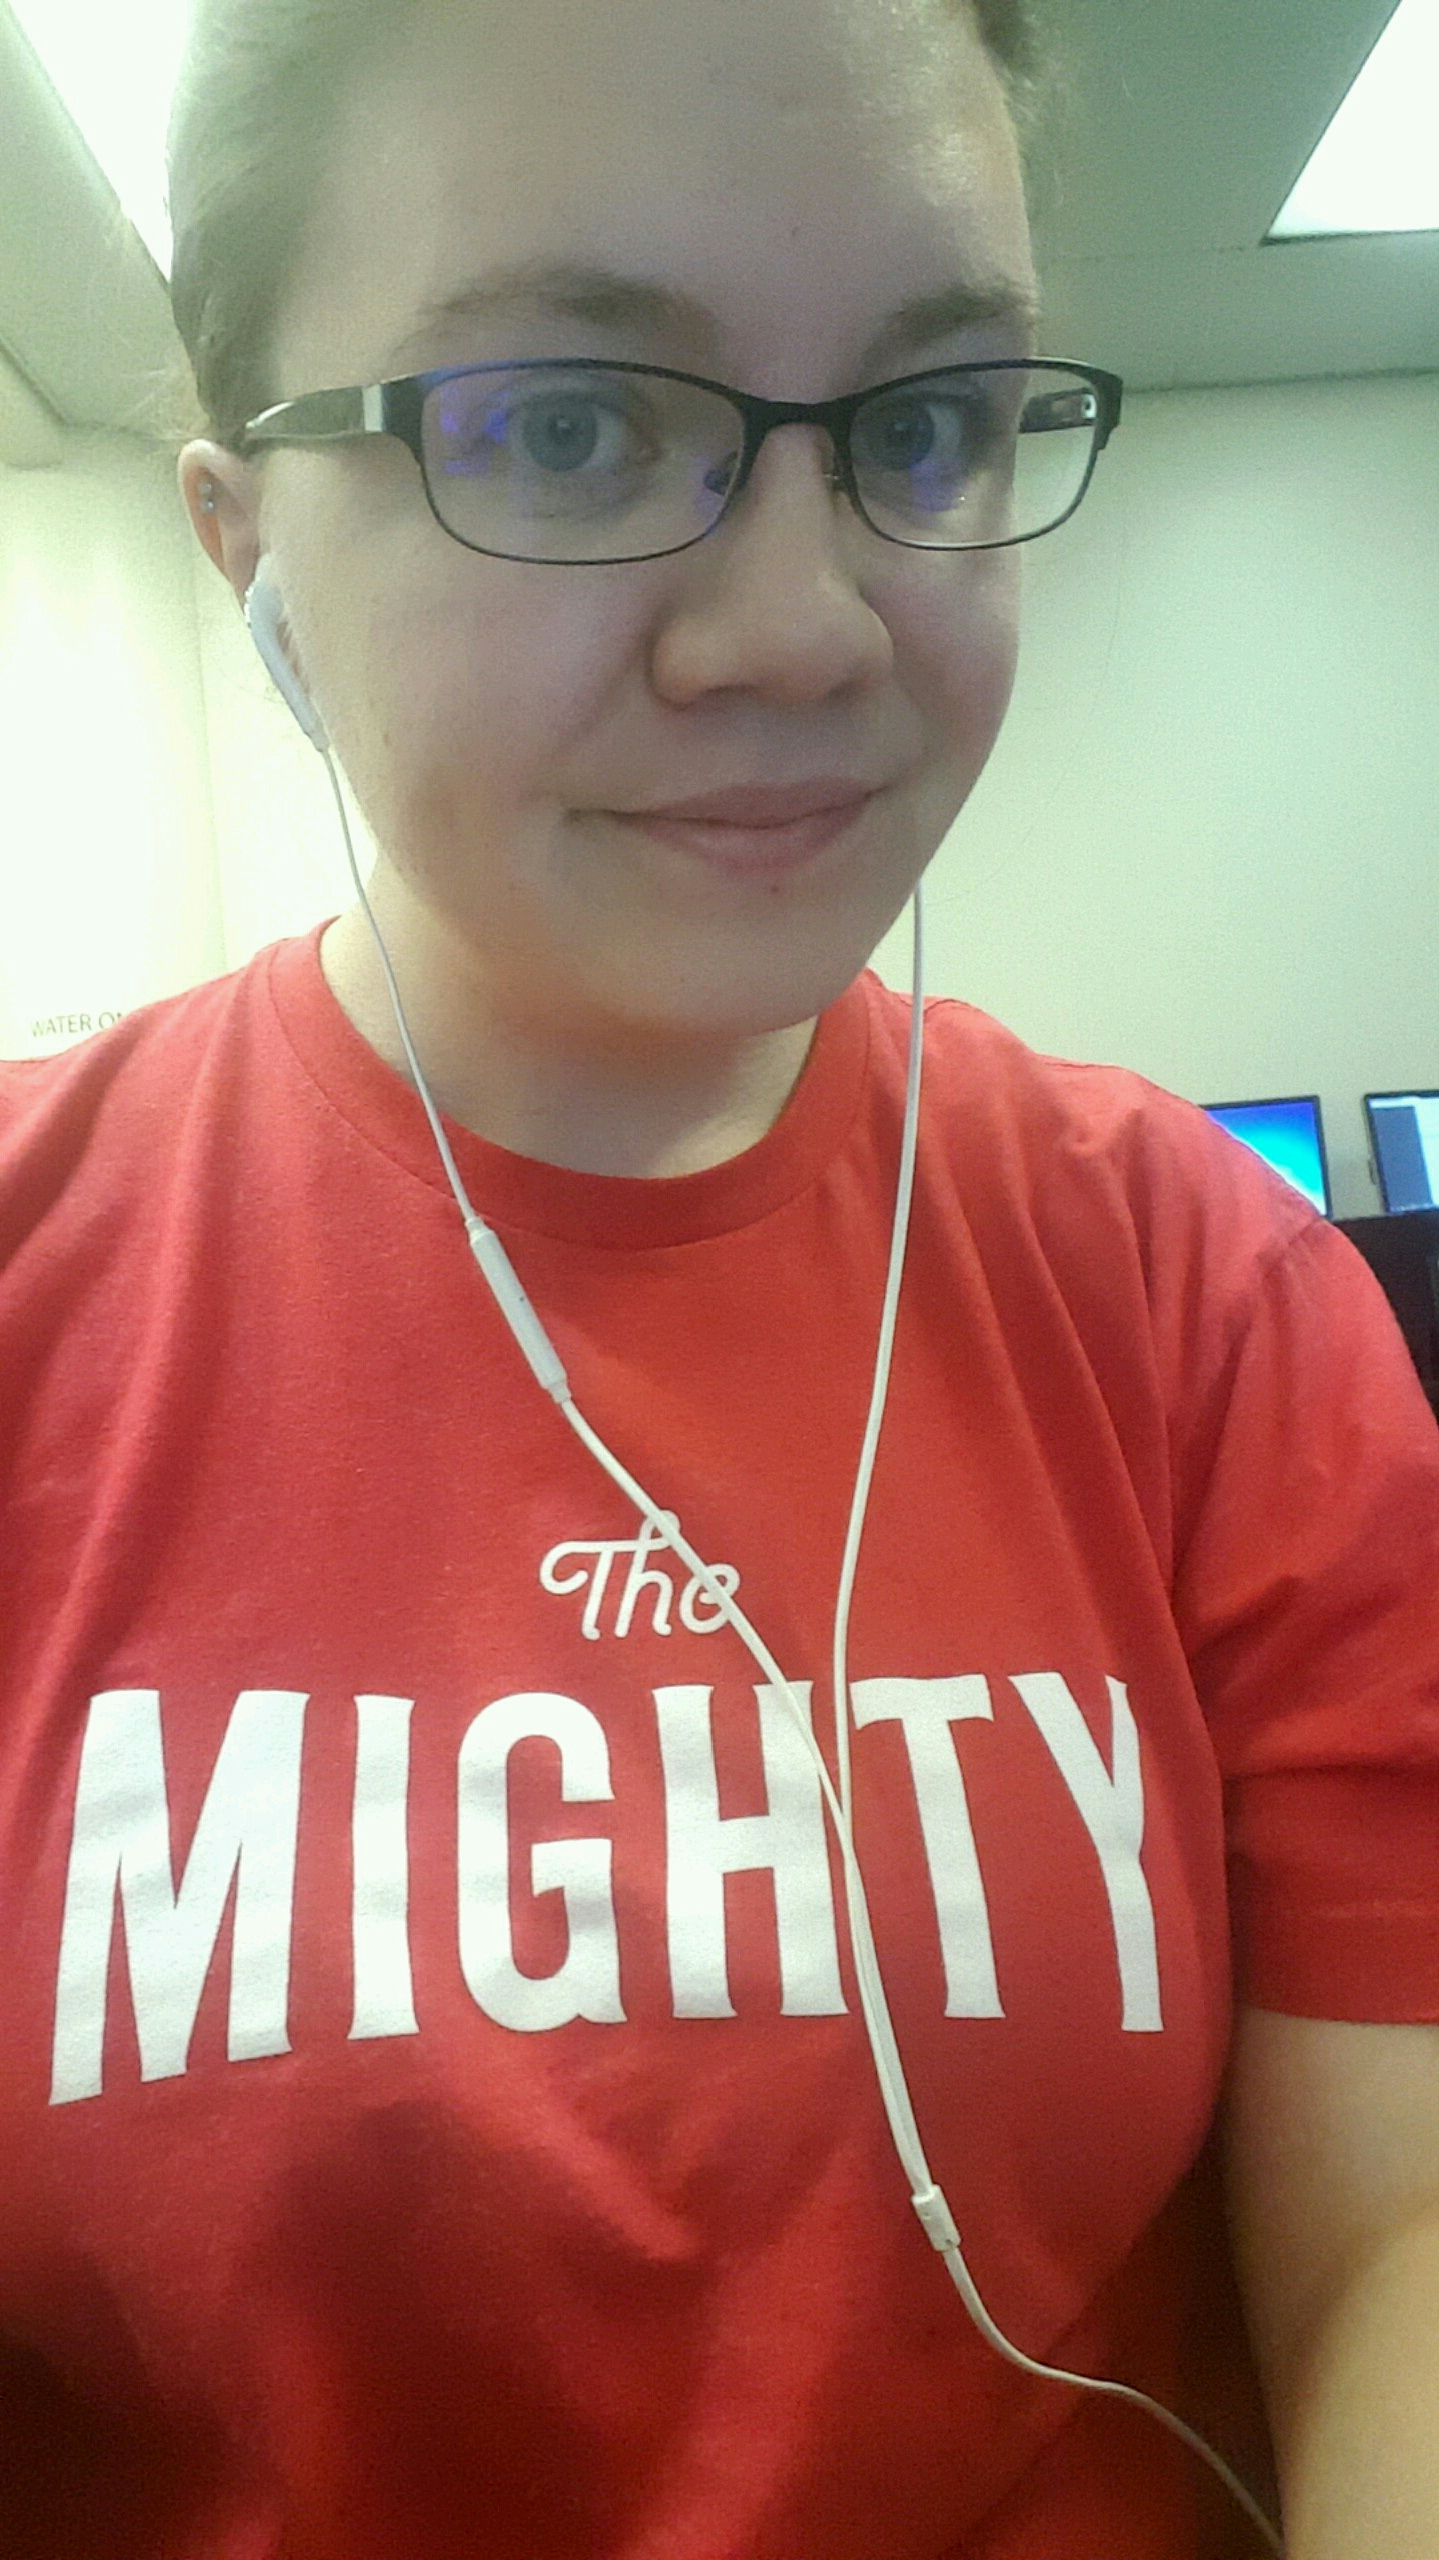 Alaura wearing red t-shirt with The Mighty logo